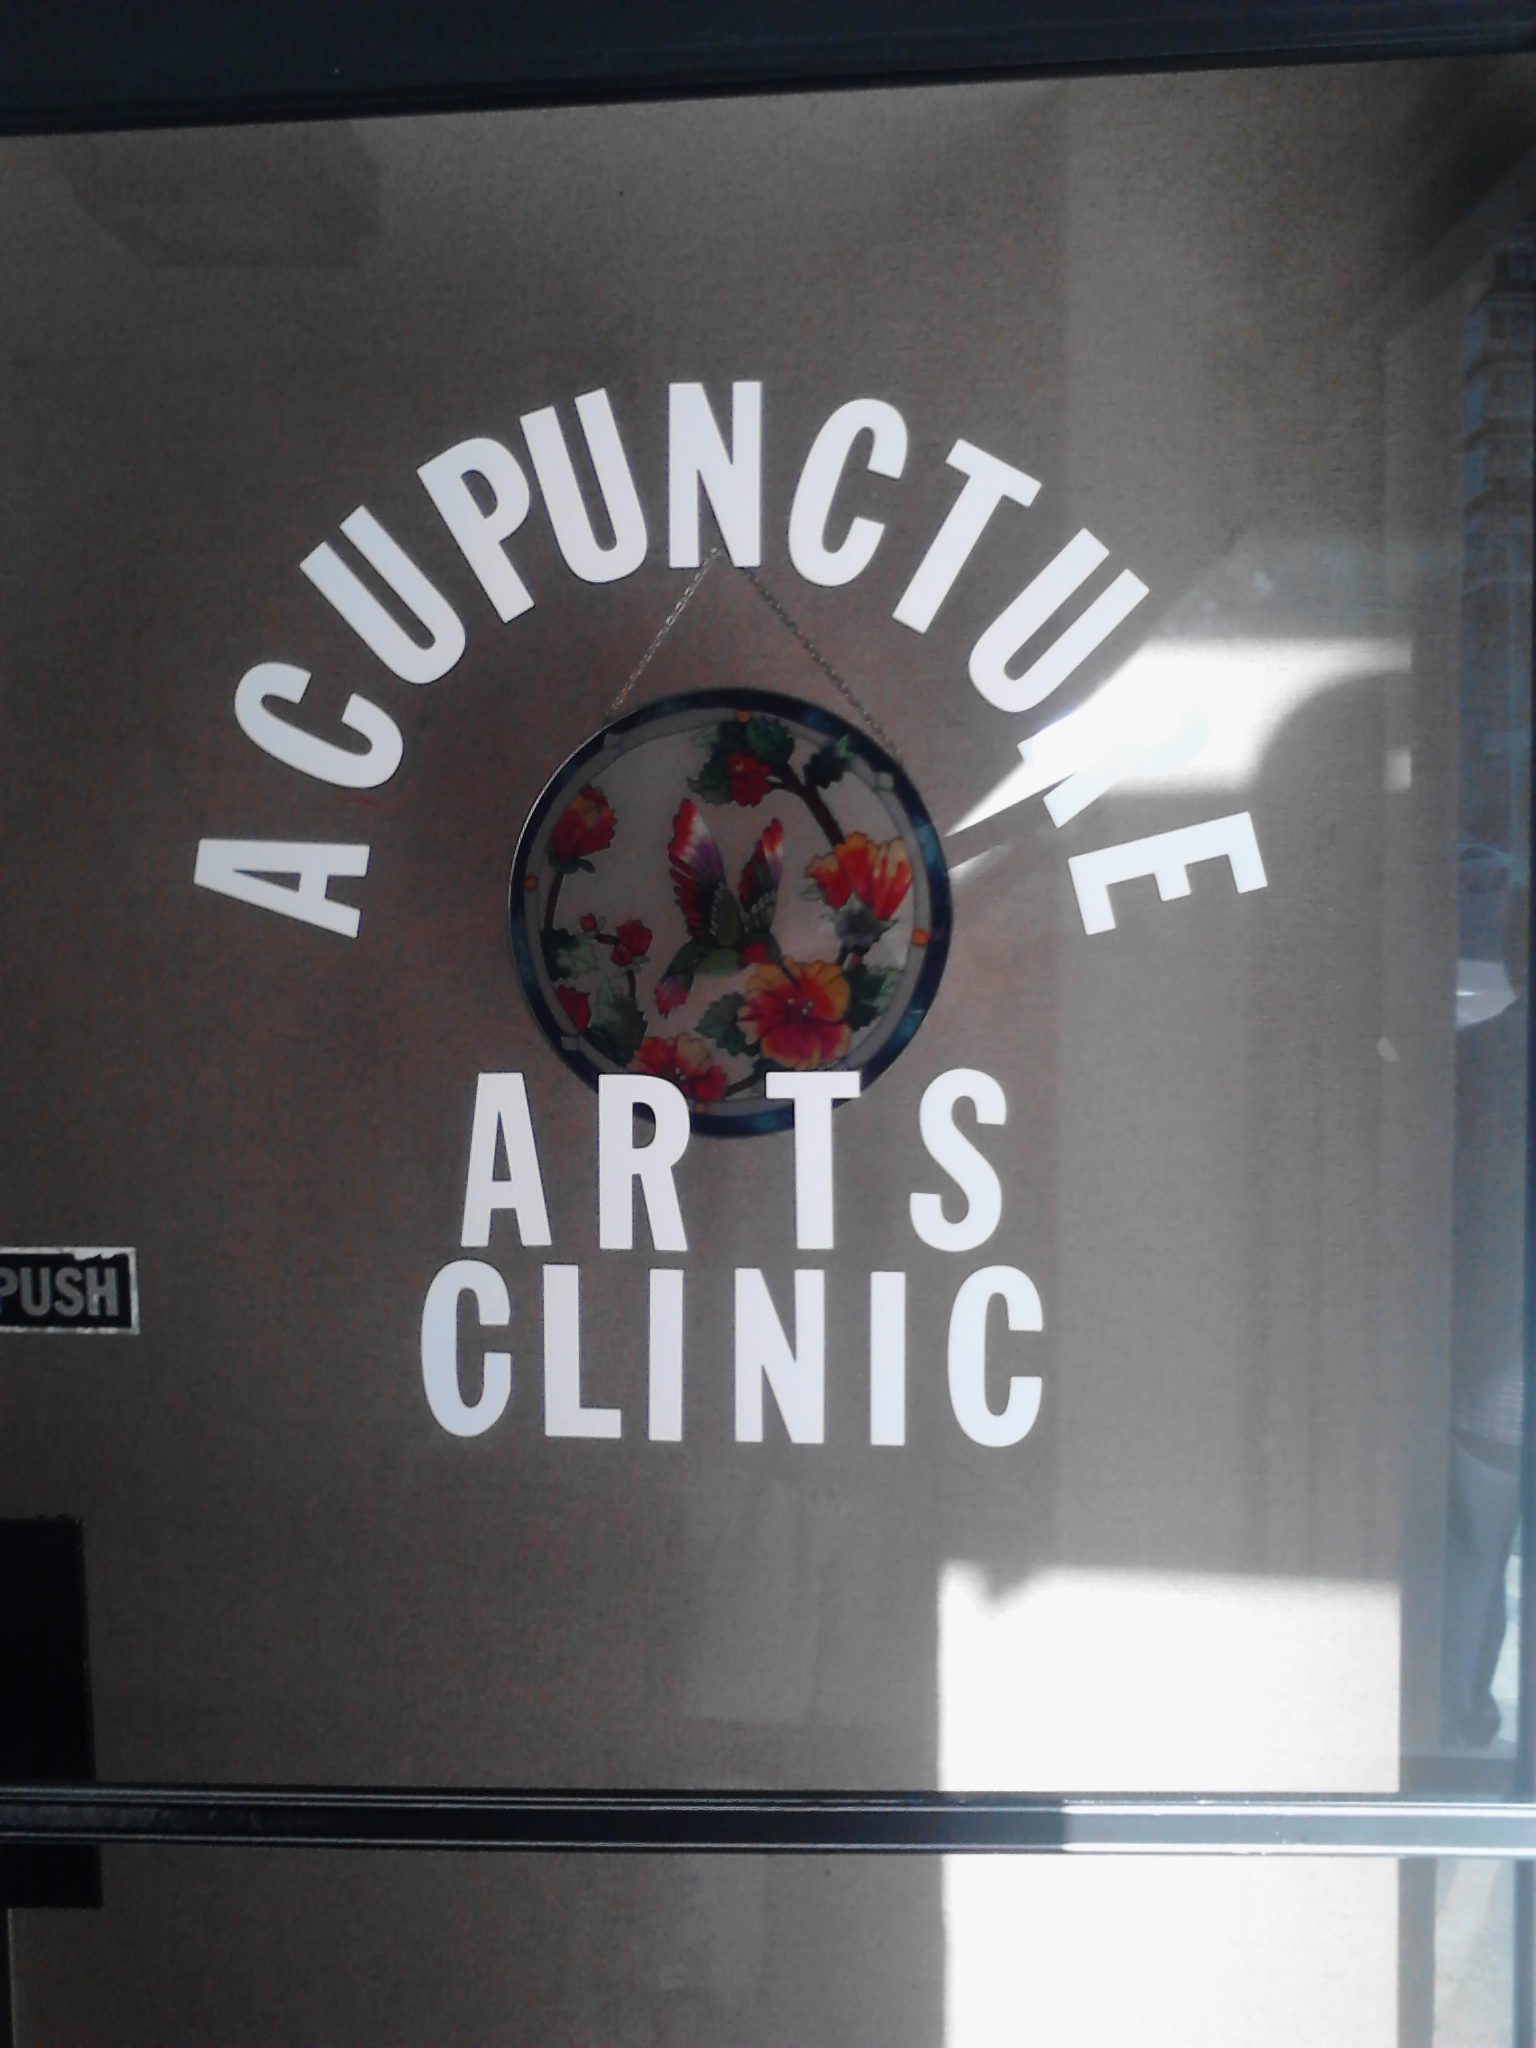 Acupuncture Arts Chinese Medicine Clinic Honolulu Hawaii